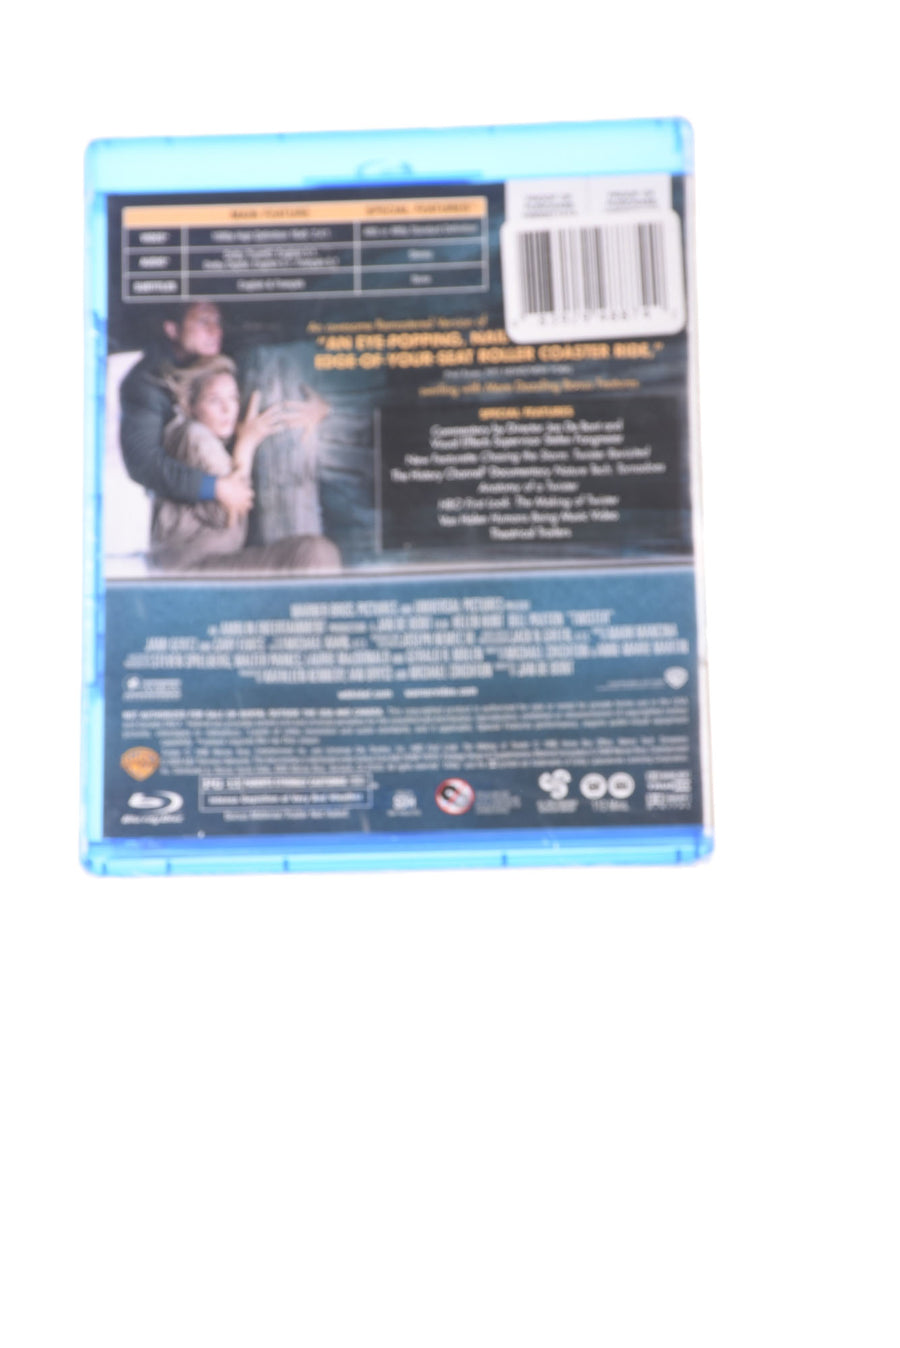 NEW Warner Bros Twister Blue Ray N/A N/A